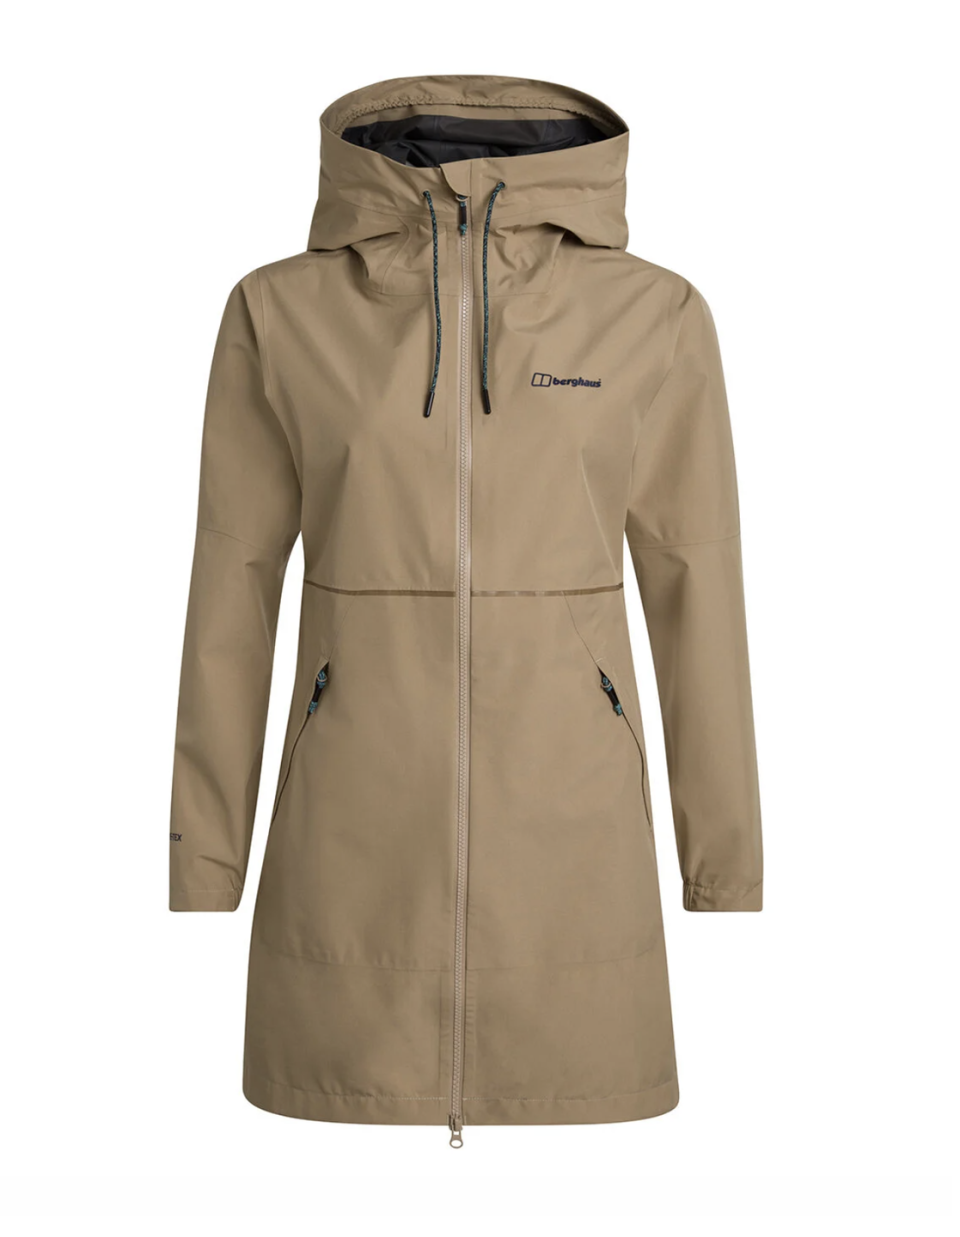 """<p><a class=""""link rapid-noclick-resp"""" href=""""https://go.redirectingat.com?id=127X1599956&url=https%3A%2F%2Fwww.berghaus.com%2Fwomens-rothley-waterproof-jacket%2F4A000854.html&sref=https%3A%2F%2Fwww.harpersbazaar.com%2Fuk%2Ffashion%2Fwhat-to-wear%2Fg35741851%2Fwaterproof-jackets%2F"""" rel=""""nofollow noopener"""" target=""""_blank"""" data-ylk=""""slk:SHOP NOW"""">SHOP NOW</a></p><p>If you want a hardworking jacket that you can use to climb a munro as well as run errands day-to-day, Berghaus's Rothley style will deliver on both. The Gore-tex jacket features a scuba-style hood and a long length to keep you dry in even the heaviest showers.</p><p>Rothley waterproof jacket, £180, <a href=""""https://www.berghaus.com/womens-rothley-waterproof-jacket/4A000854.html"""" rel=""""nofollow noopener"""" target=""""_blank"""" data-ylk=""""slk:Berghaus"""" class=""""link rapid-noclick-resp"""">Berghaus</a></p>"""